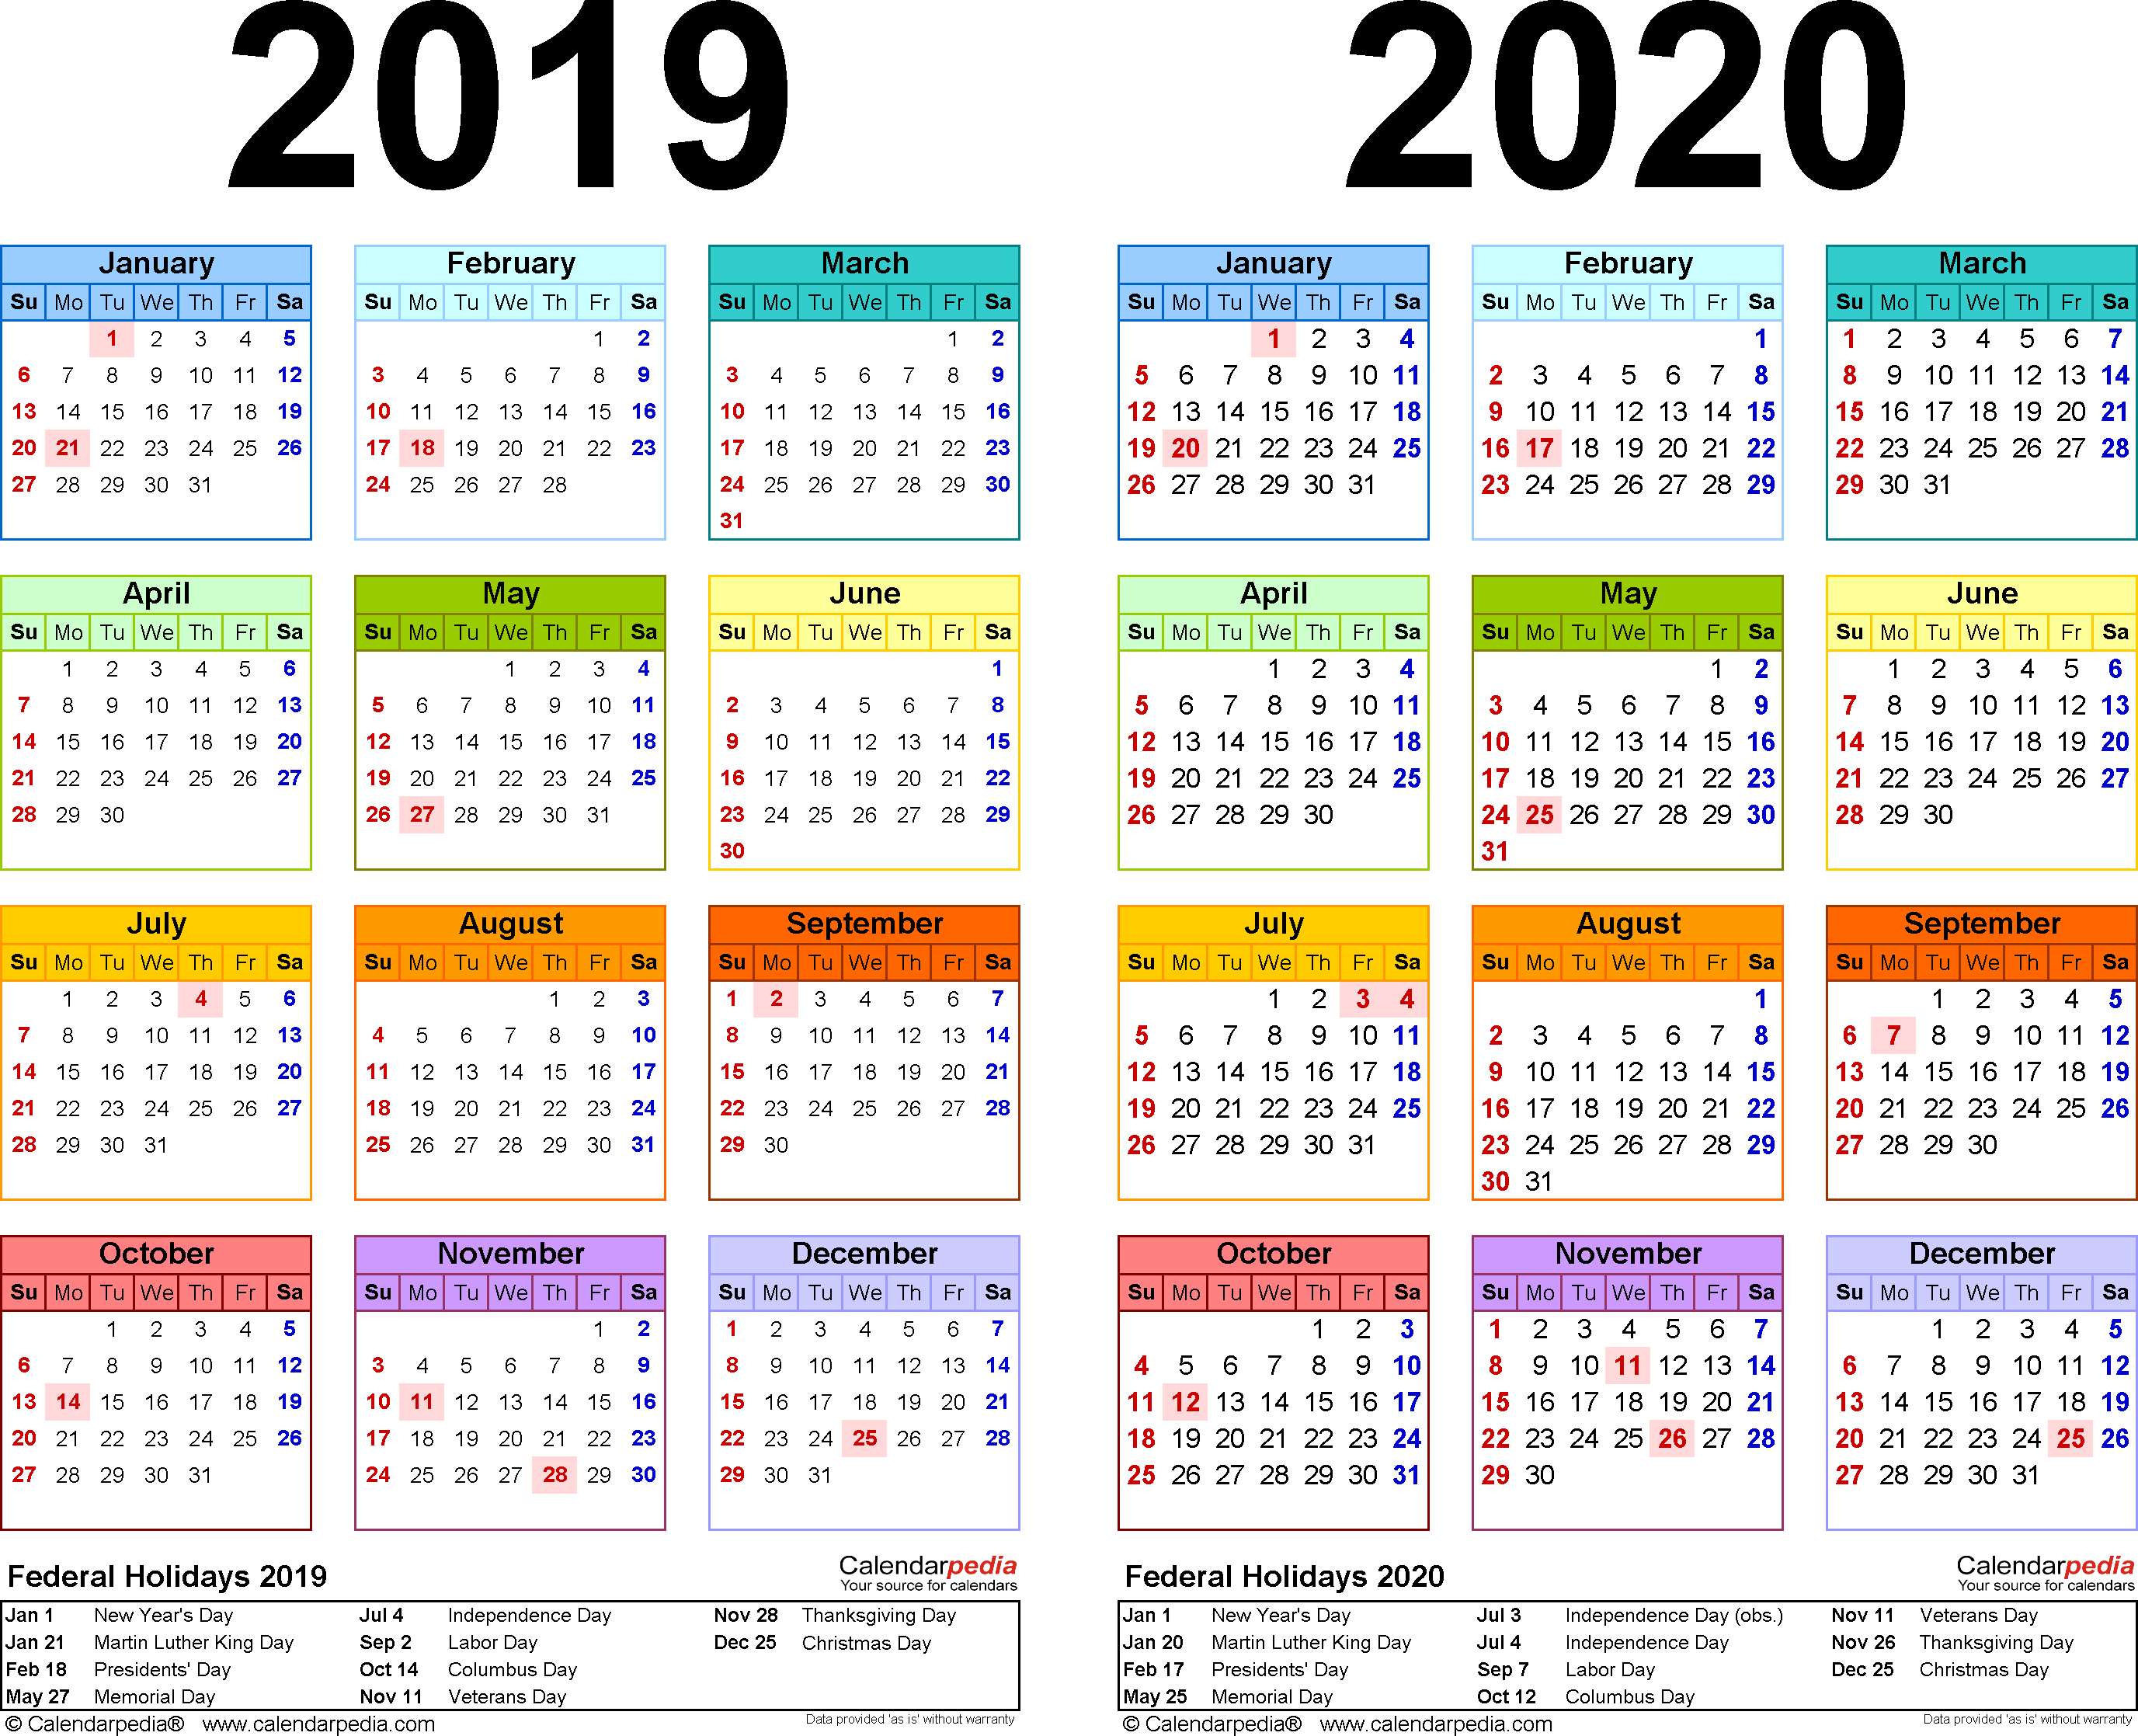 2019-2020 Calendar - Free Printable Two-Year Excel Calendars with regard to 2020 Calendar Time And Date